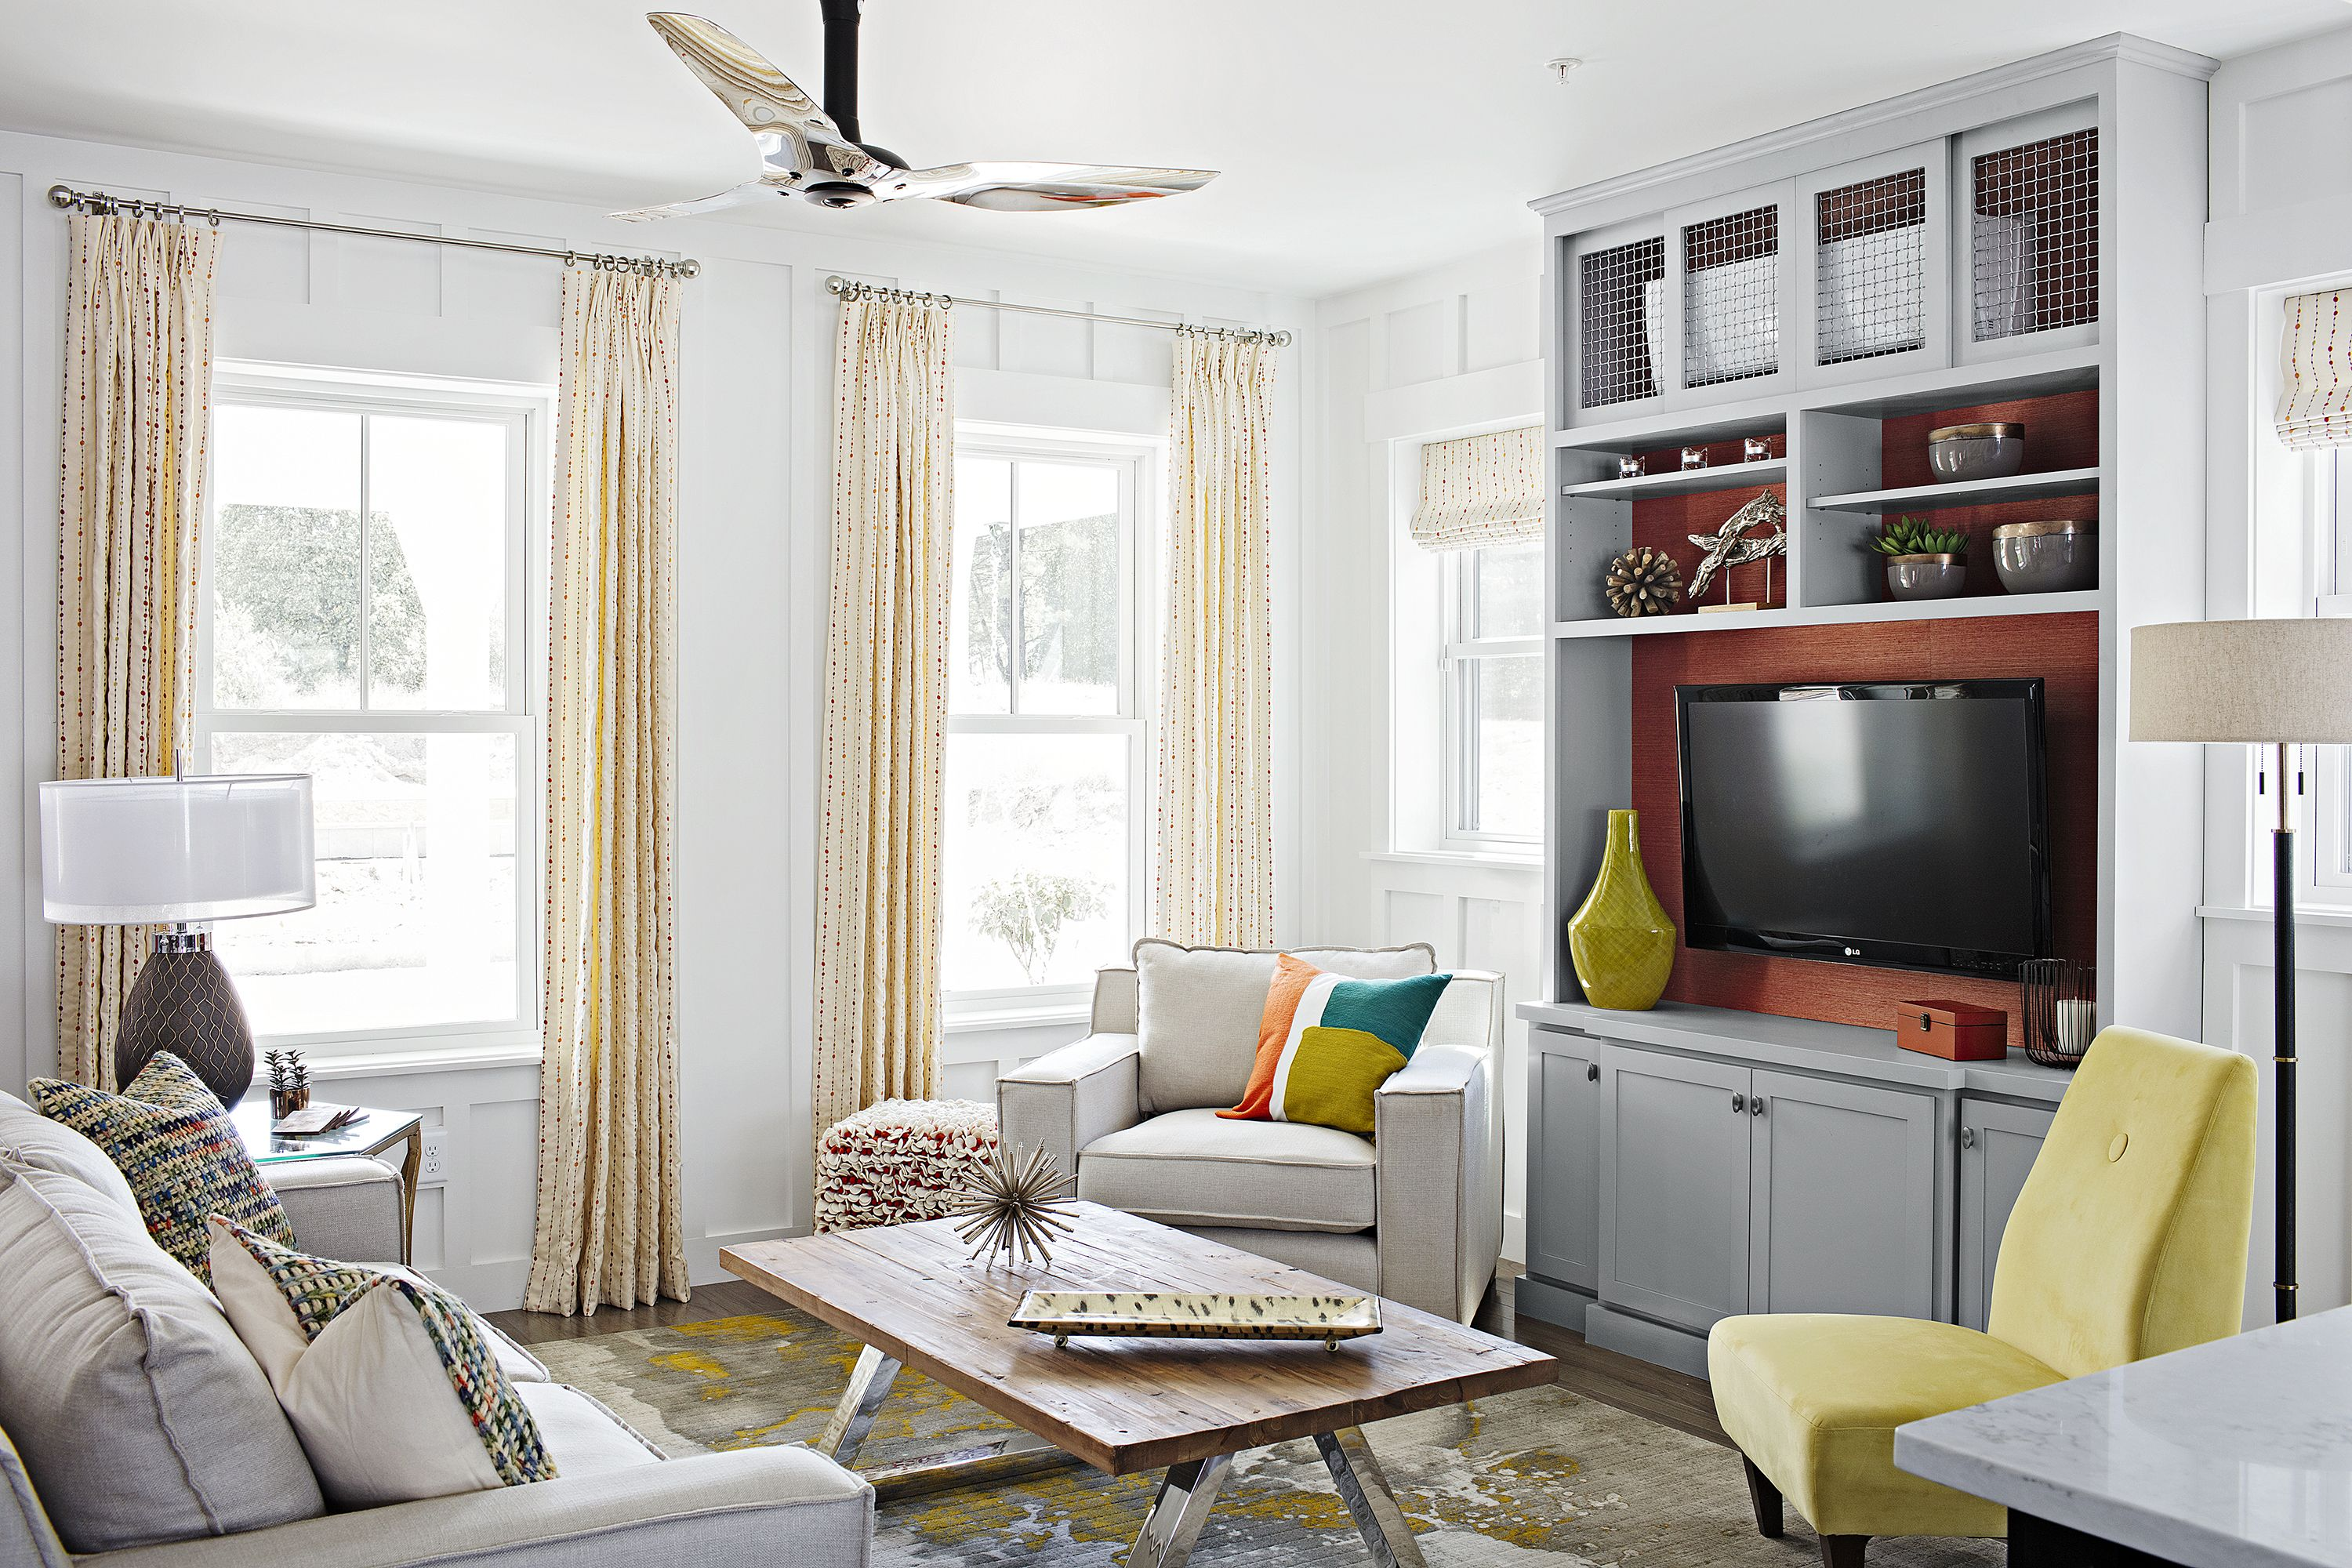 Smart Ideas for Built-in Efficiency Around the Home | Pinterest ...